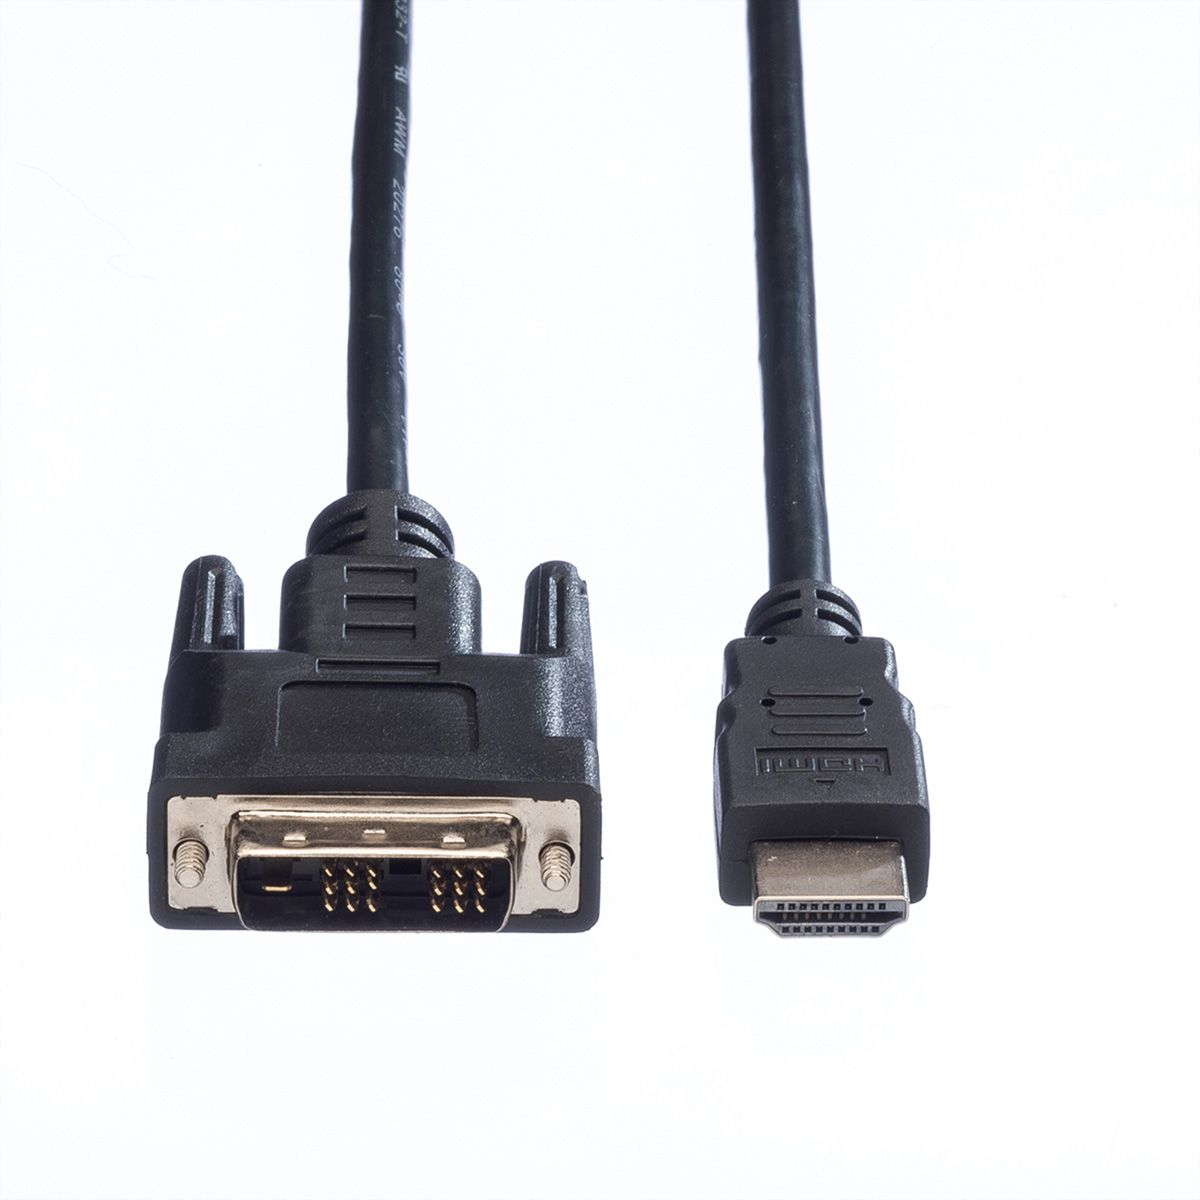 VALUE Kabel DVI (18+1) ST - HDMI ST, 2,0 m - SECOMP GmbH